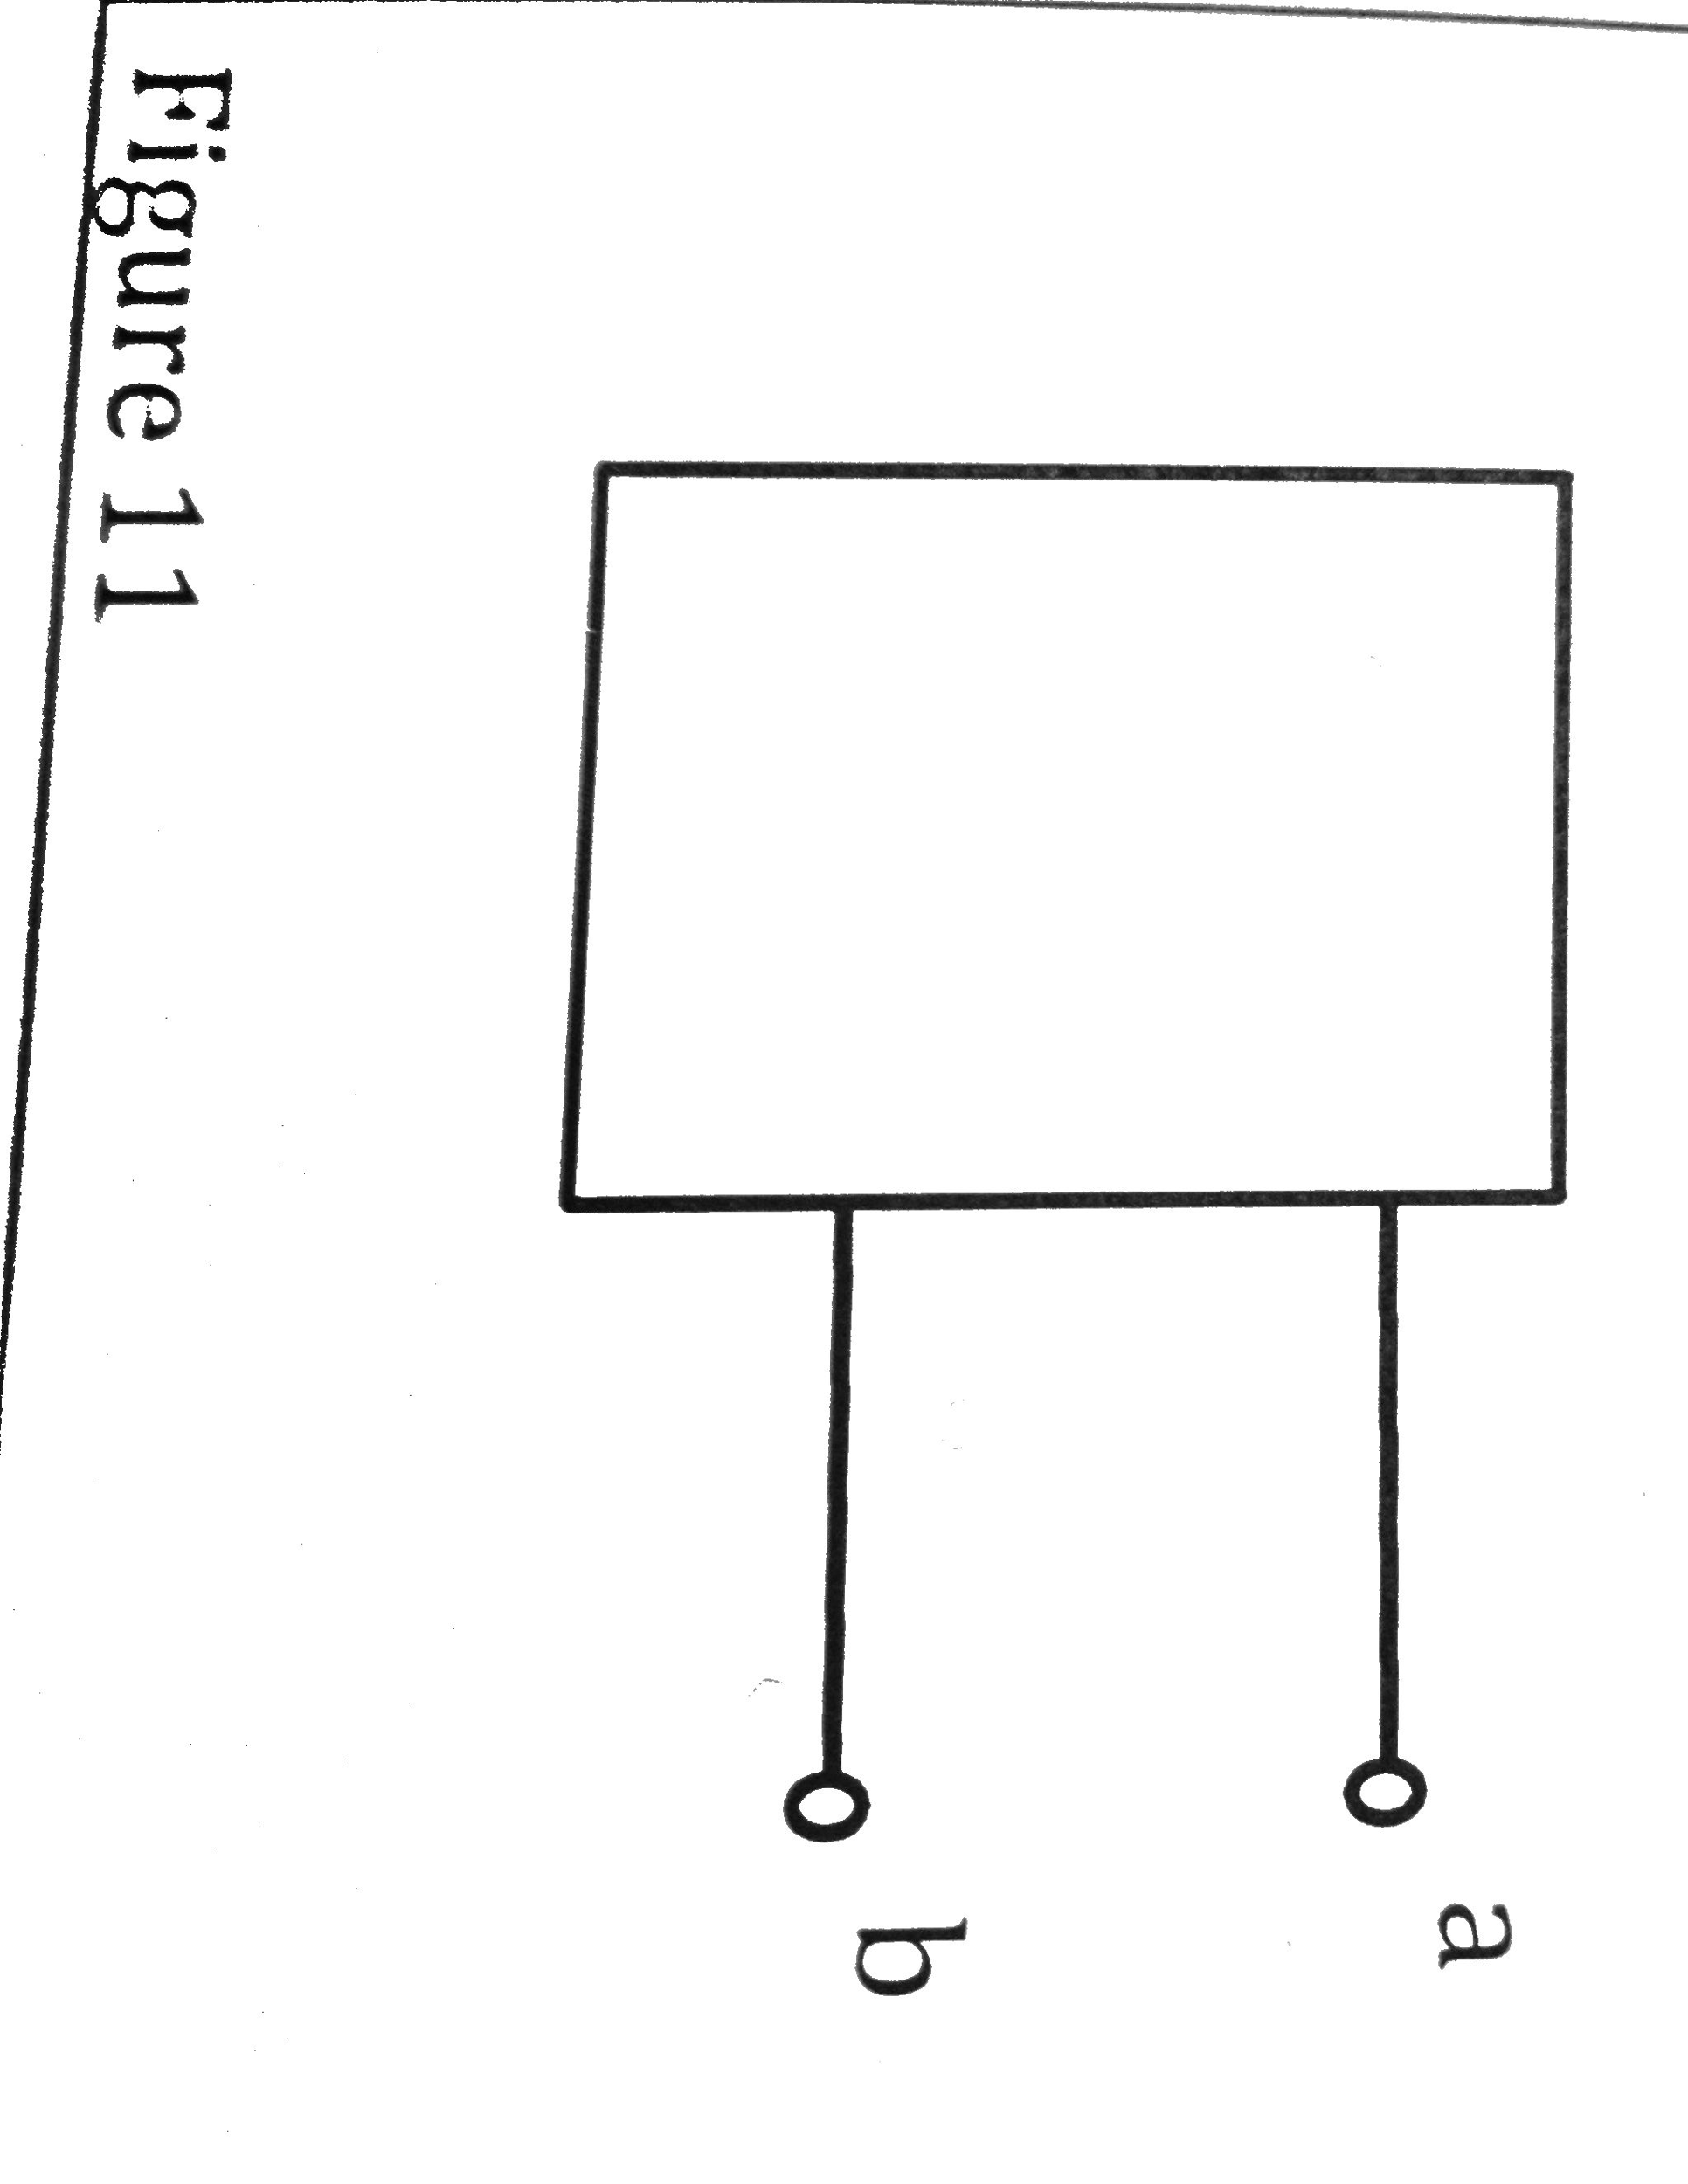 In Figure 11, an ammeter is connected across the l